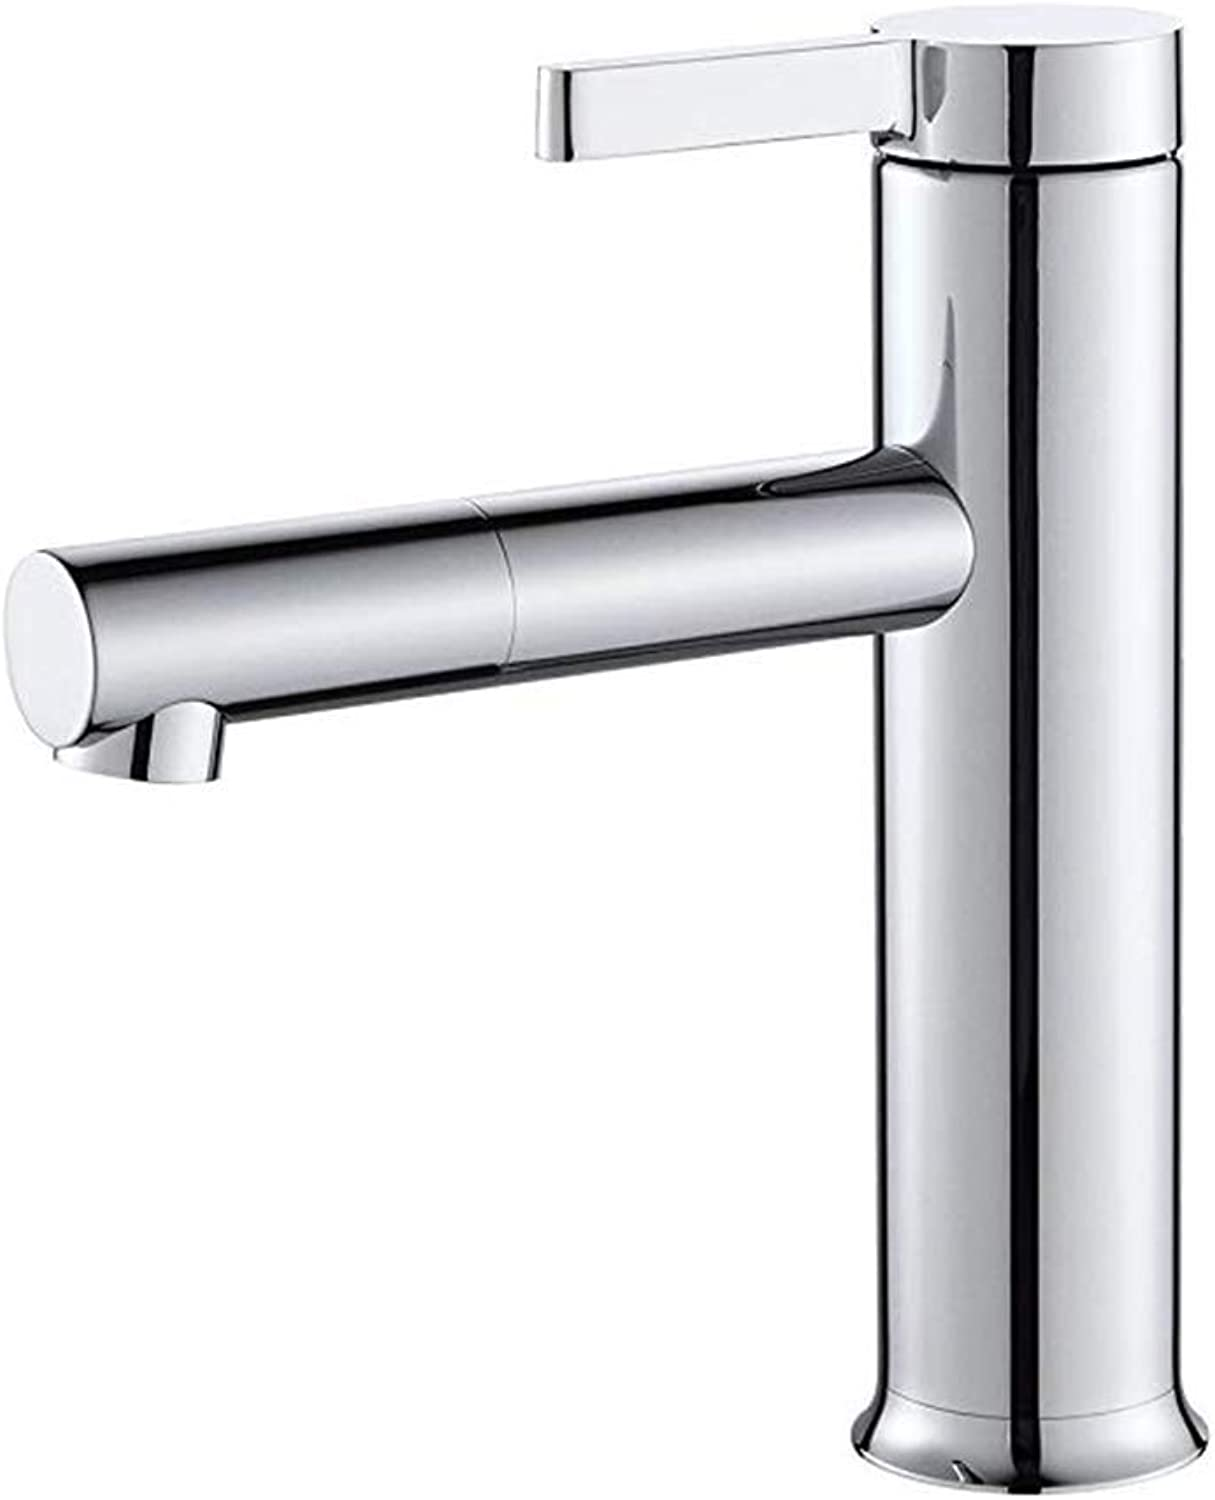 Basin Faucetbasin Taps Mordern Round Solid Brass Bathroom Sink Mixer Tap Single Lever Single Hole Faucet